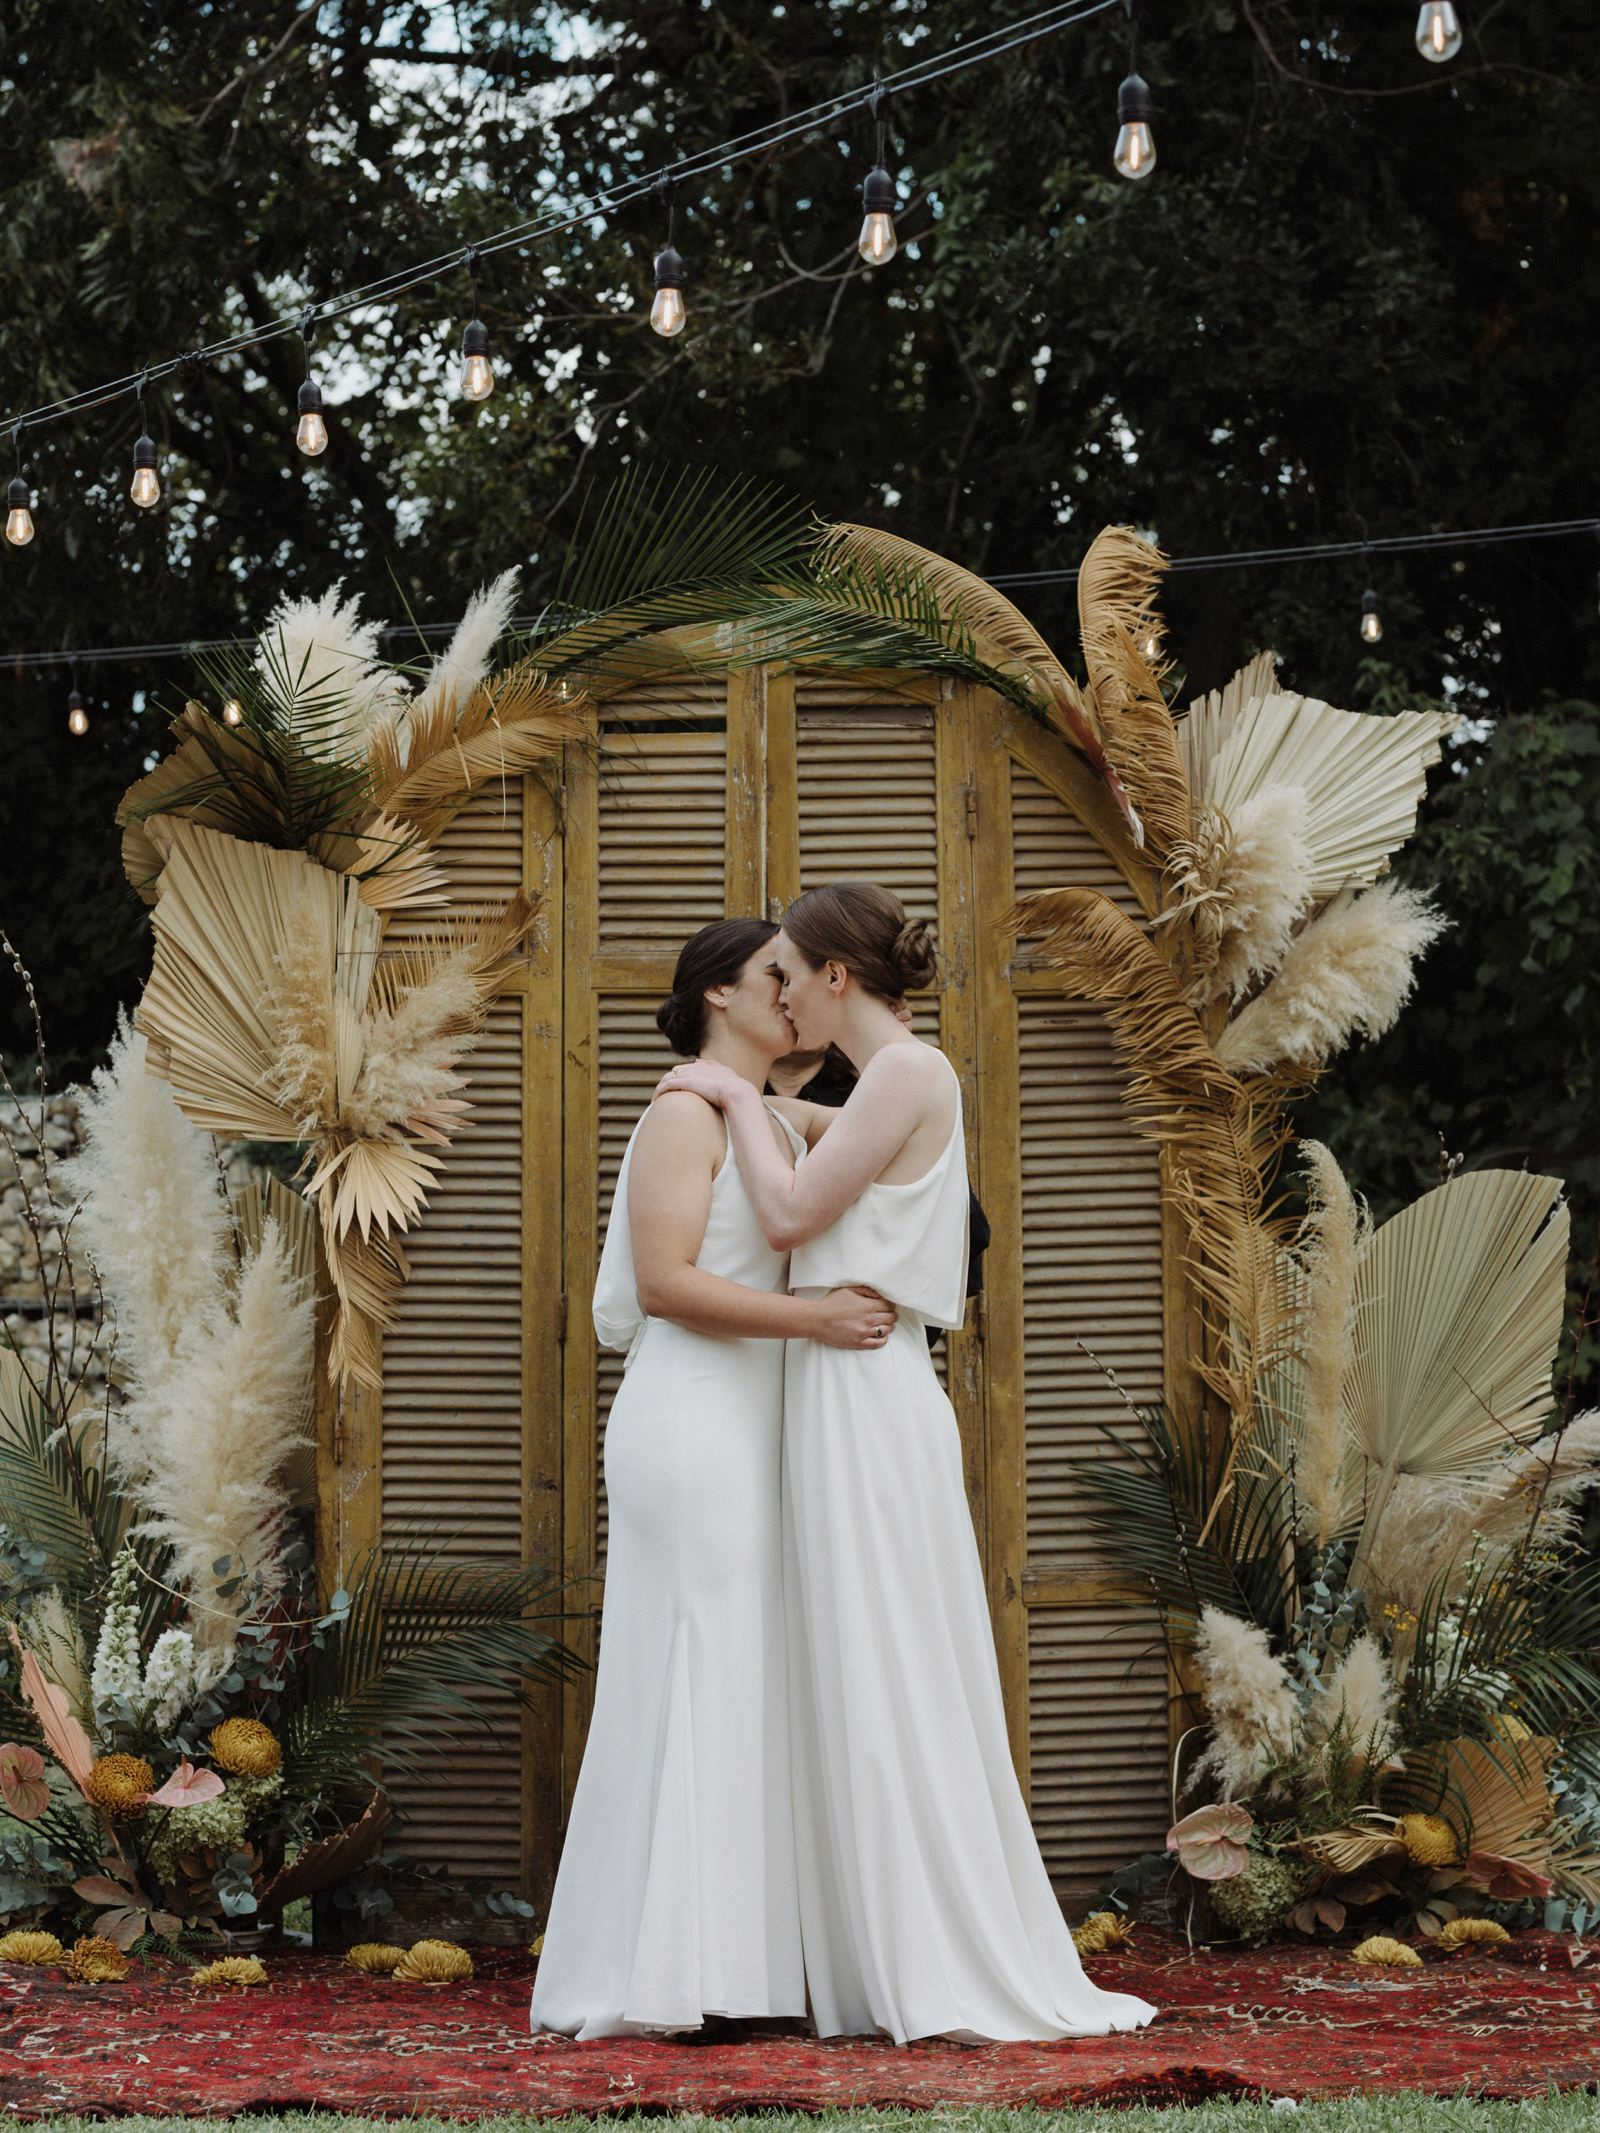 Two brides first kiss at an altar decorated with dried palm fronds, pampas grass, and subtle mustard and pink florals on a red rug